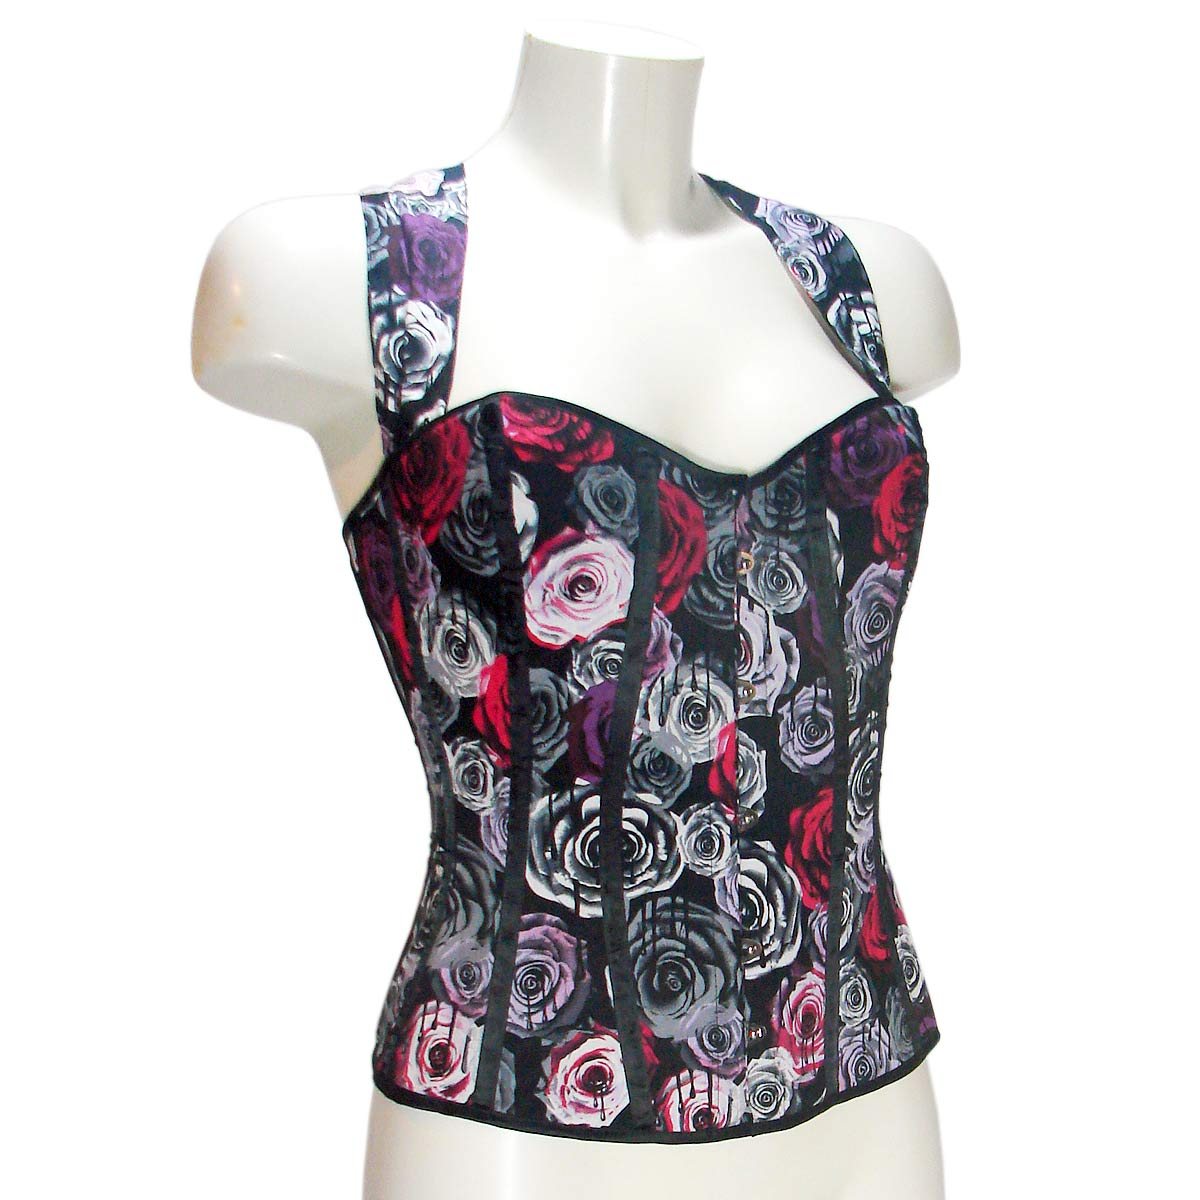 Corset Bodice Top Oi Oi Roses Print by Hell BunnyAnother Way of Life